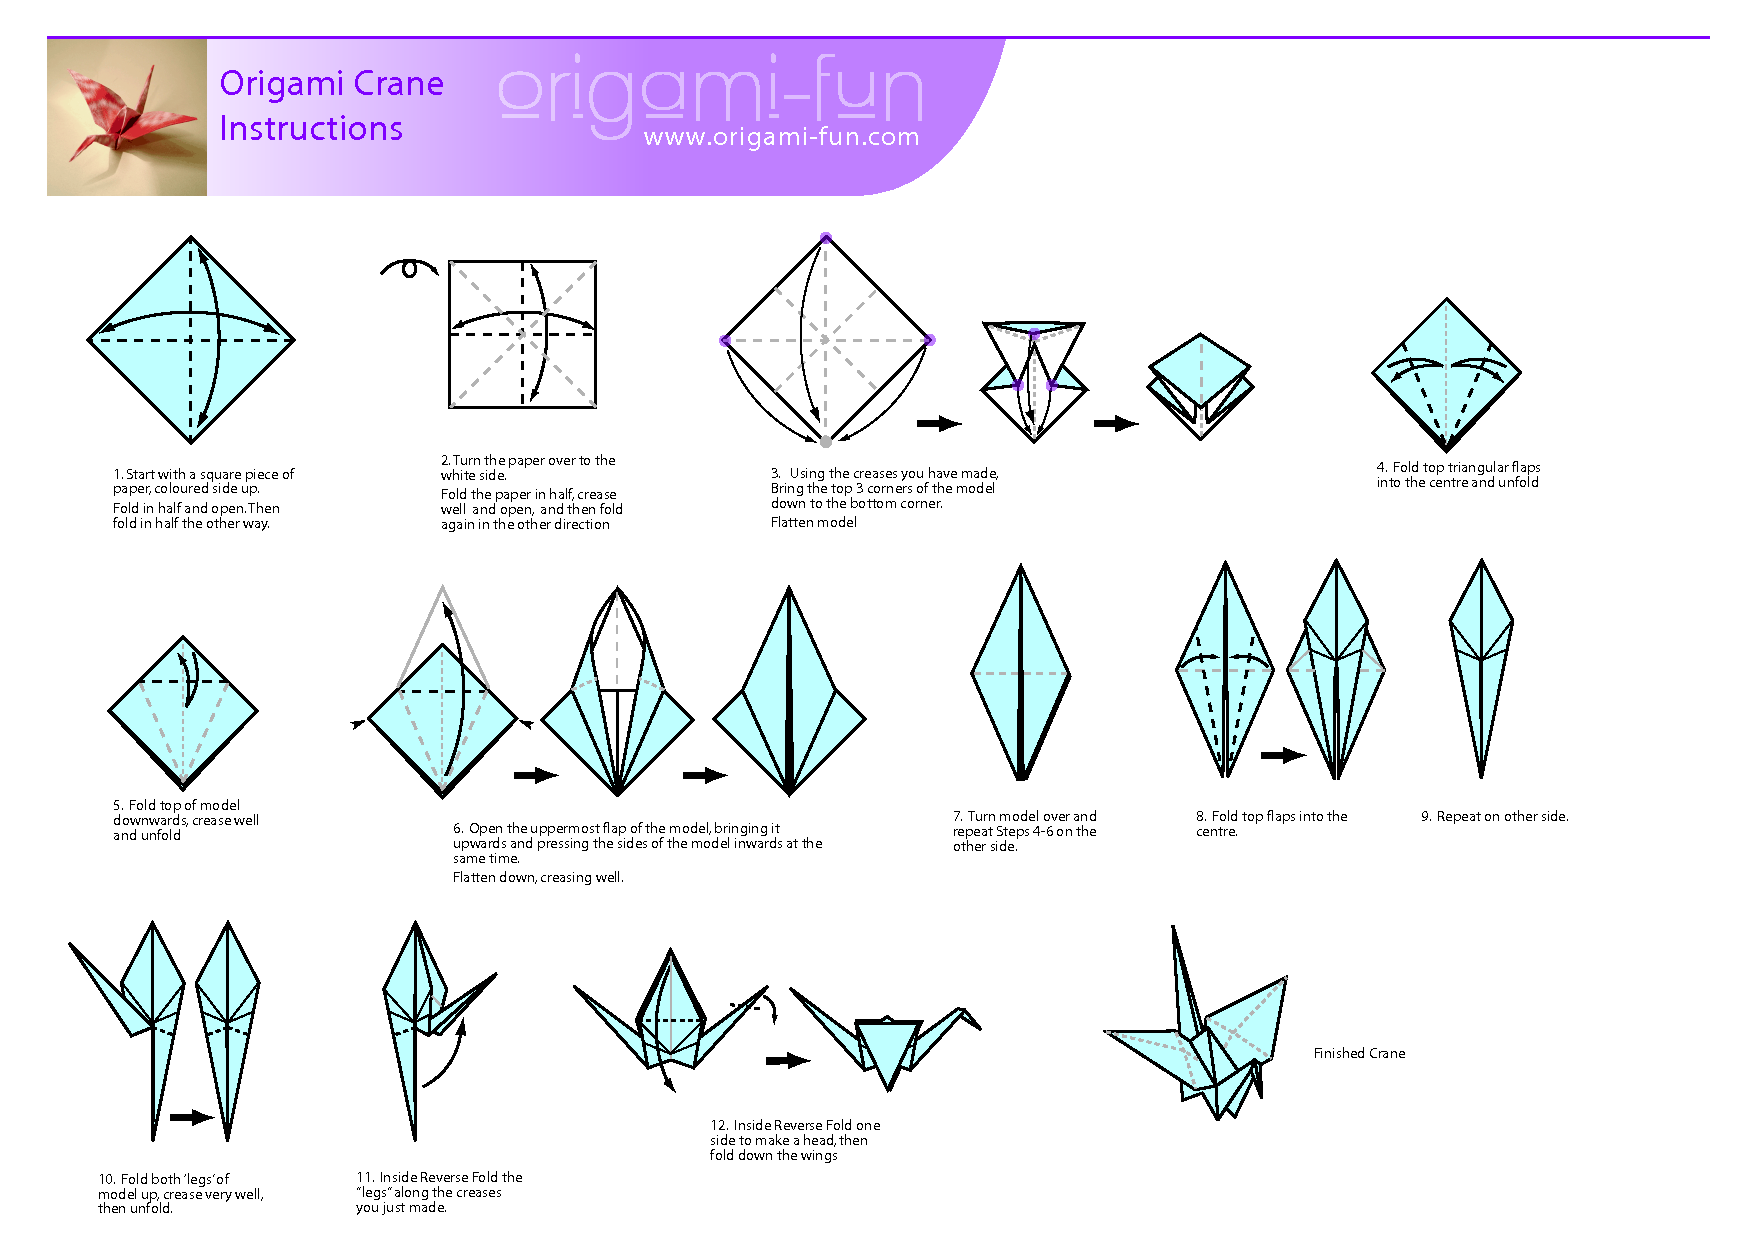 Origami crane instructions pljcs childrens department origami martins origami crane crane origami steps crane origami mobile appealing crane origami crane origami how to crane origami meaning jeuxipadfo Images